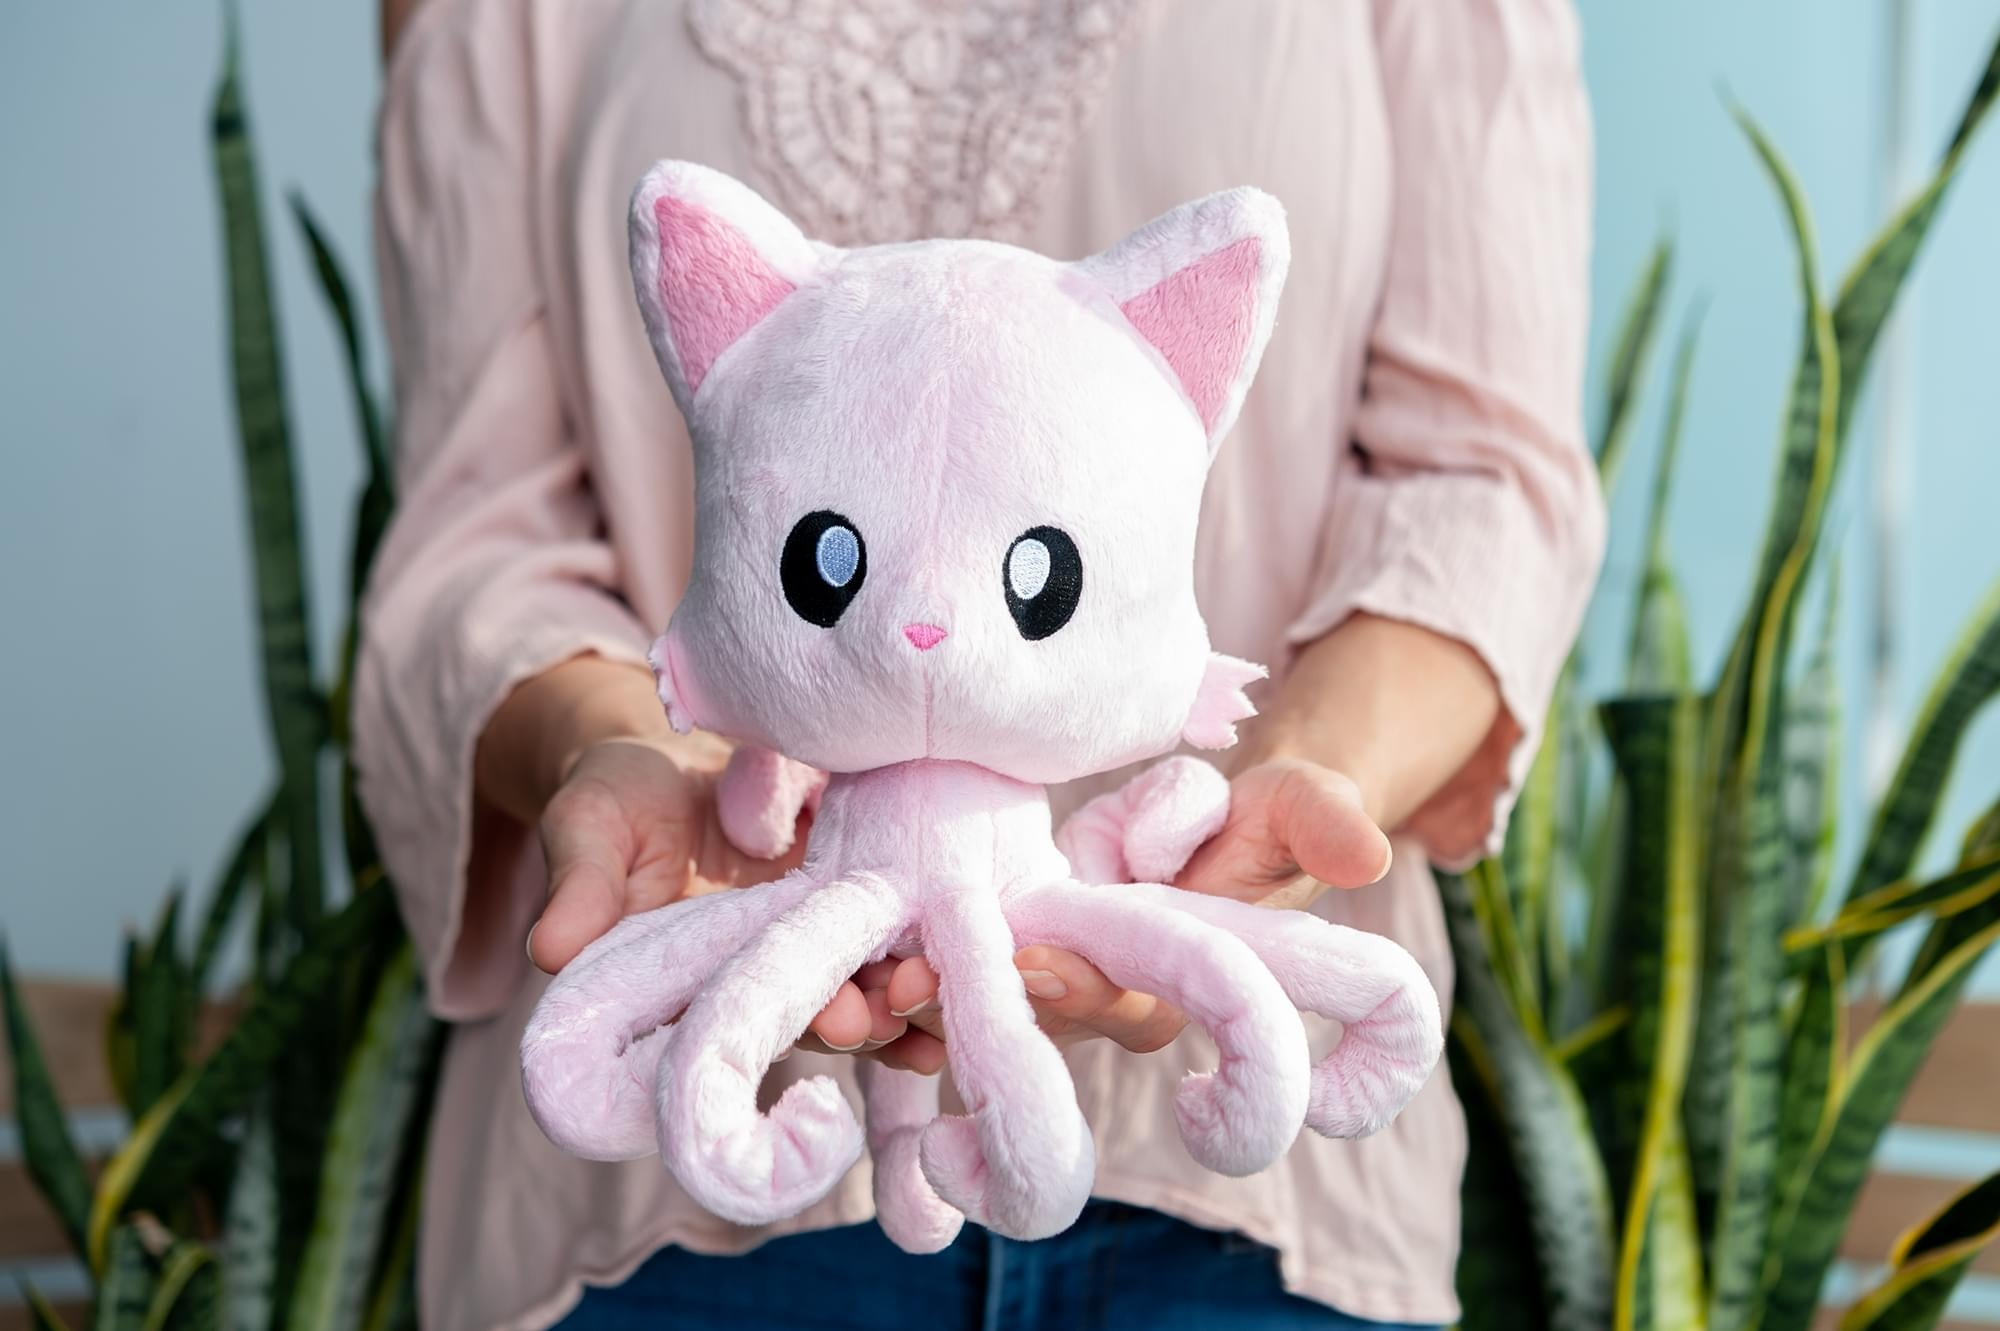 Tentacle Kitty Cotton Candy Scented Pink Plush Collectible | Measures 8 Inches Tall